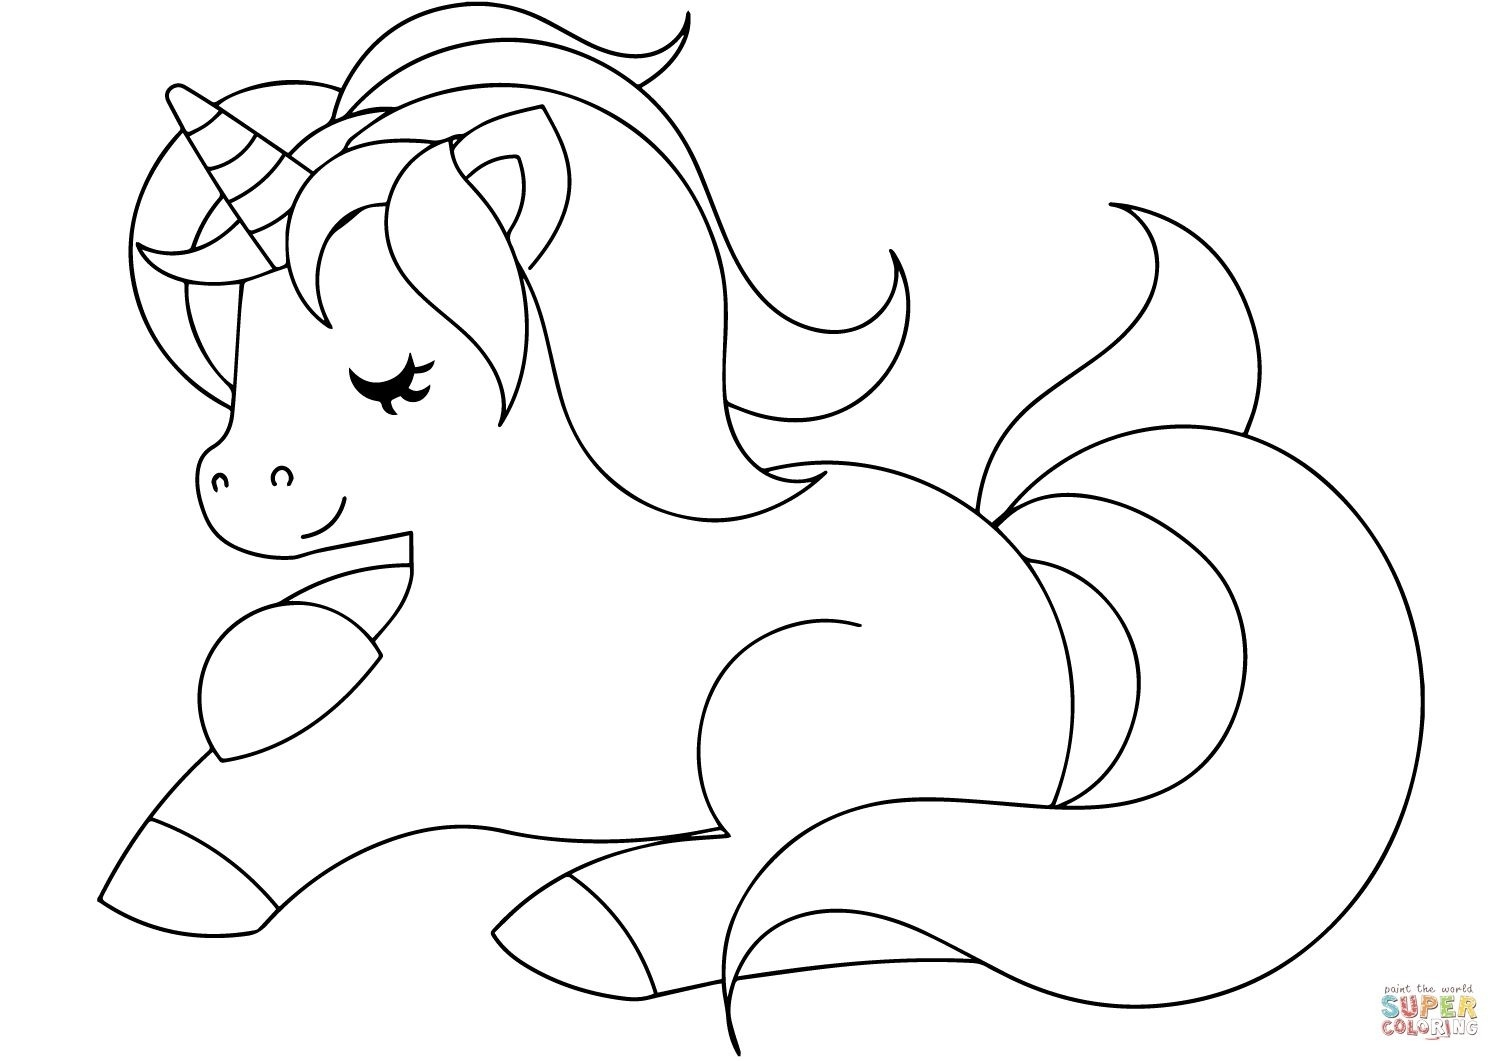 Free Printable Coloring Pages For Kids Cute Unicorn Coloring Page Free Printable Coloring Pages With